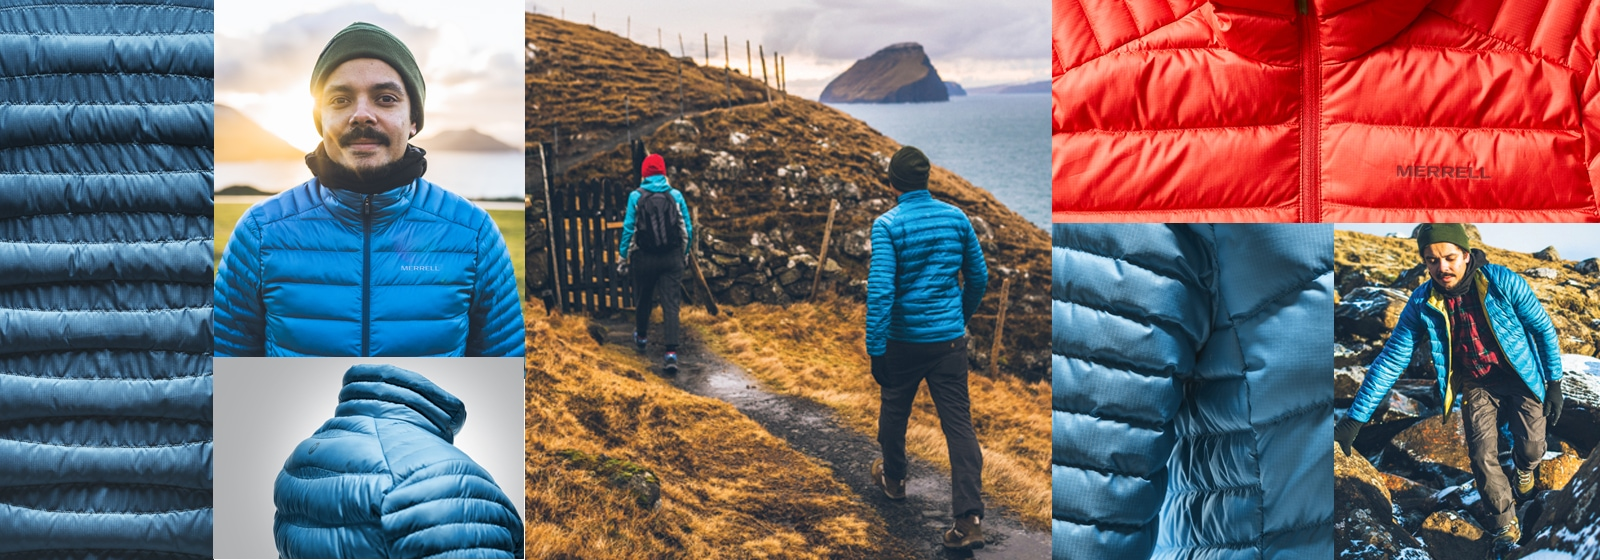 A collage of pictures feature the Ridgevent Jacket